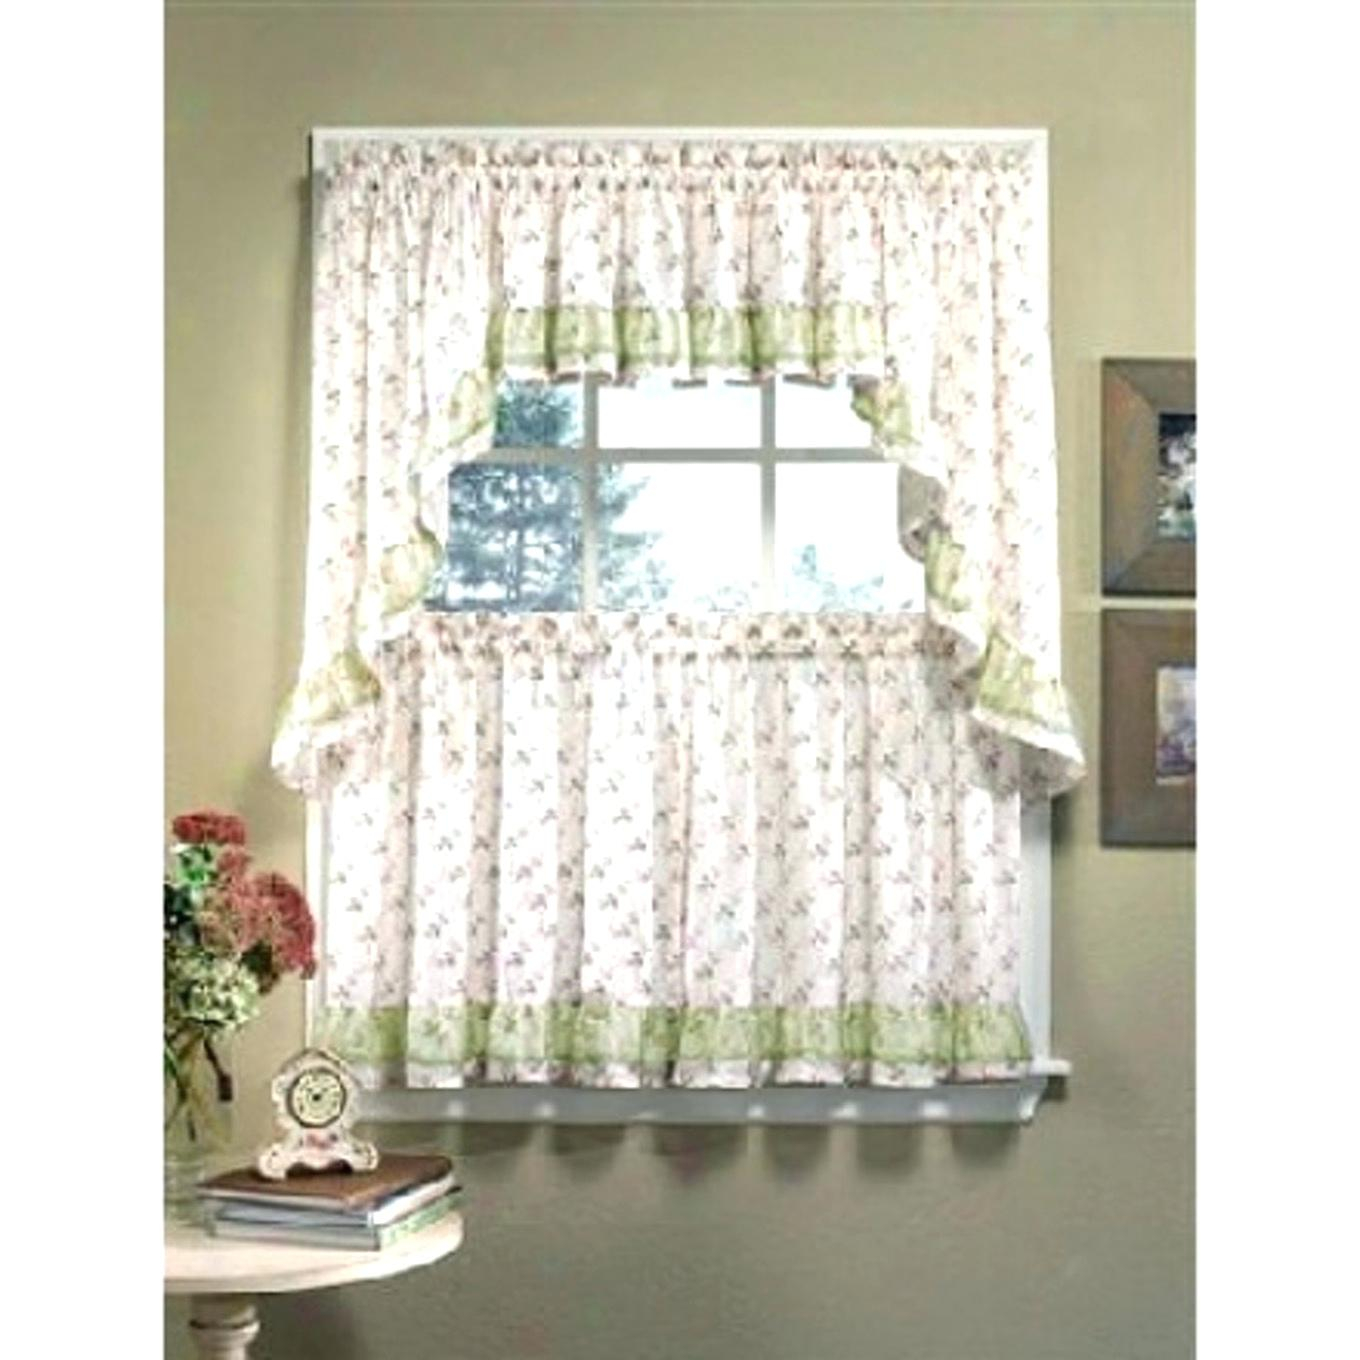 com and brown l attached sofa white living curtains fascinating wooden curtain valance with blinds eyekonn sears light or extraordinary fur room rectangle letter home decor table